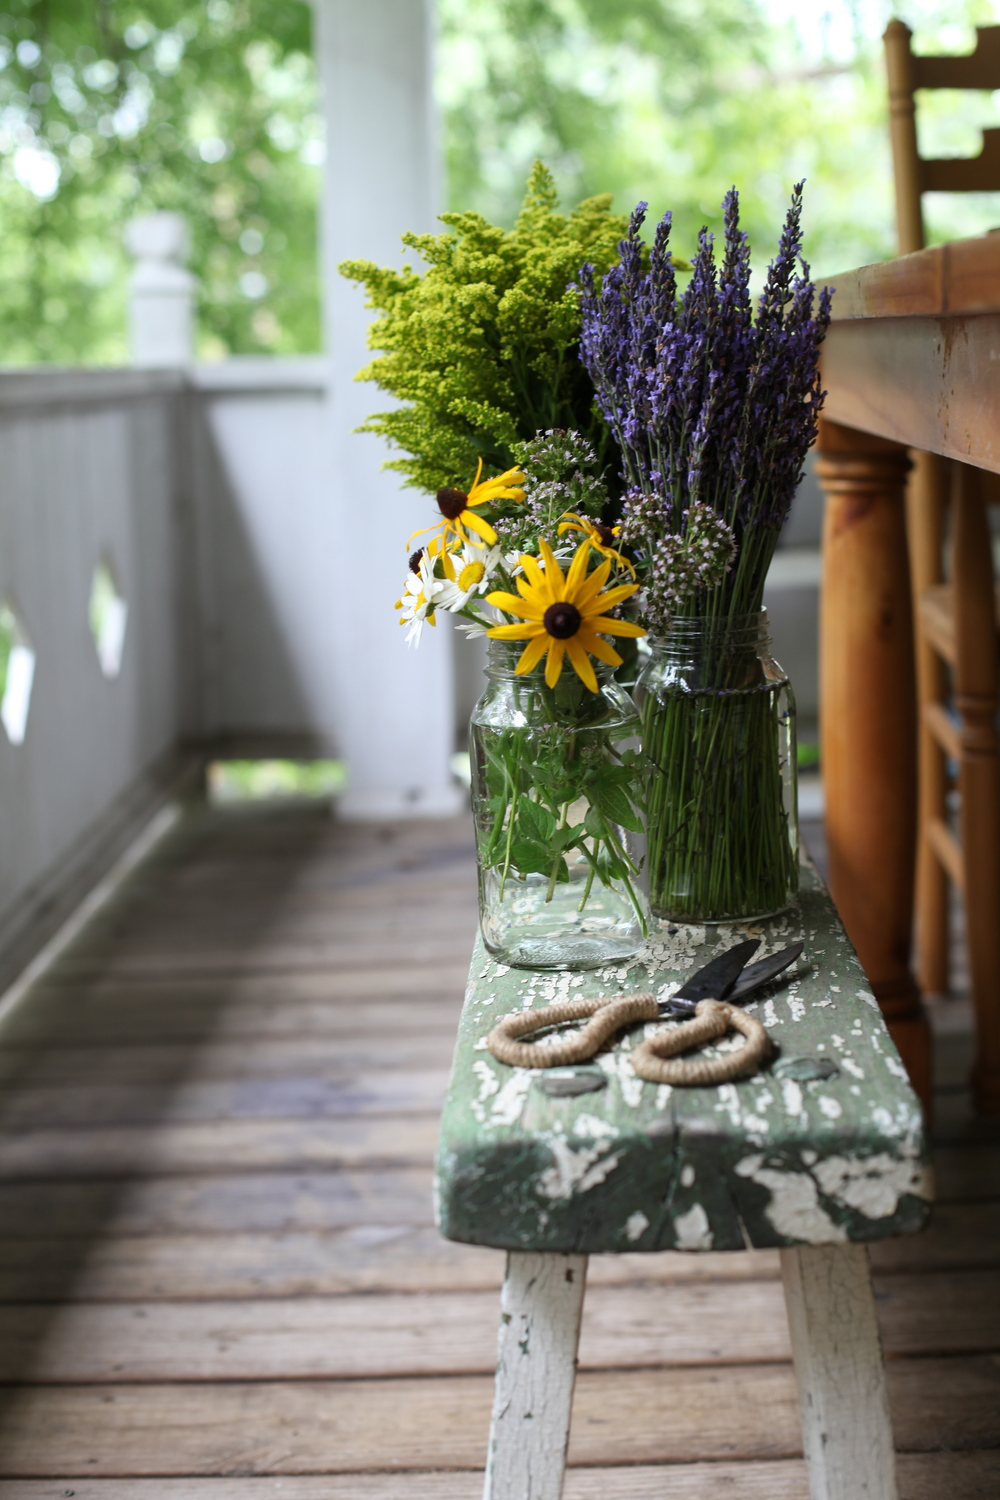 Floral assembly from the home garden